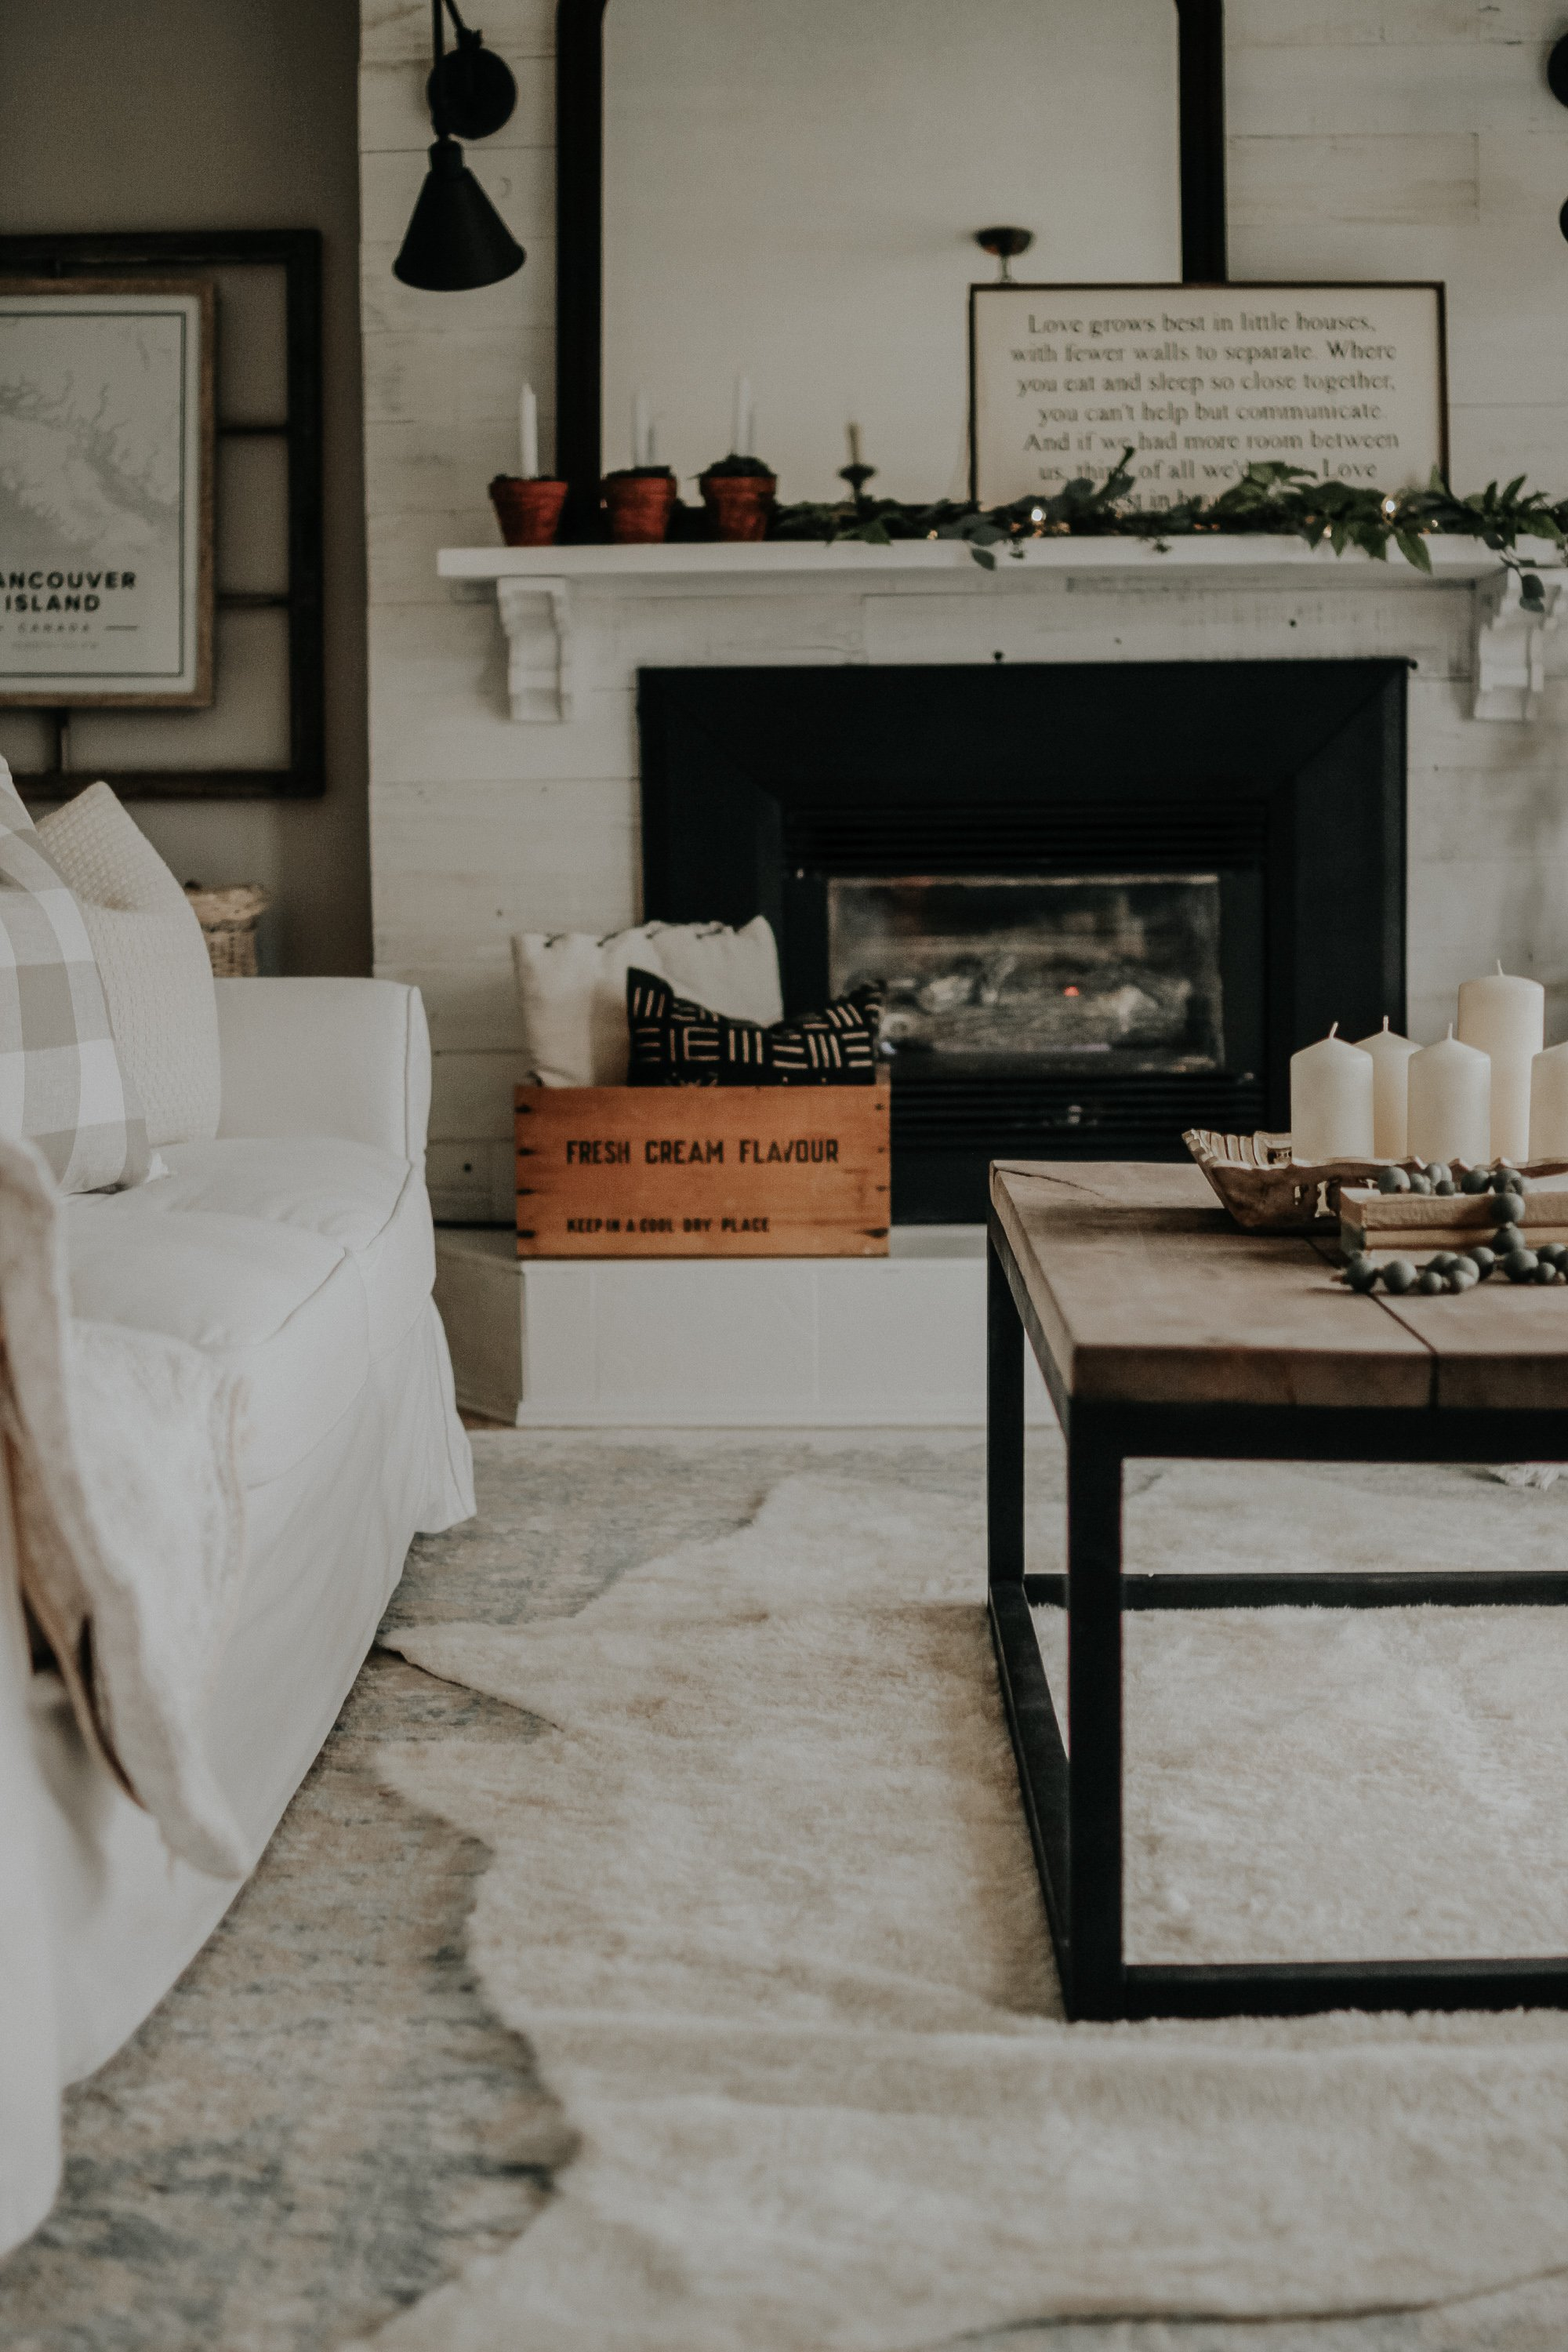 Cozy Winter Decor. Decorating After Christmas while still having a super cozy home. My key pieces to make my home extra cozy after the Holidays and into the new year. January Decor for a cozy farmhouse. Liz Marie Galvan Inspired, Shiplap Fireplace and Layered Mantle